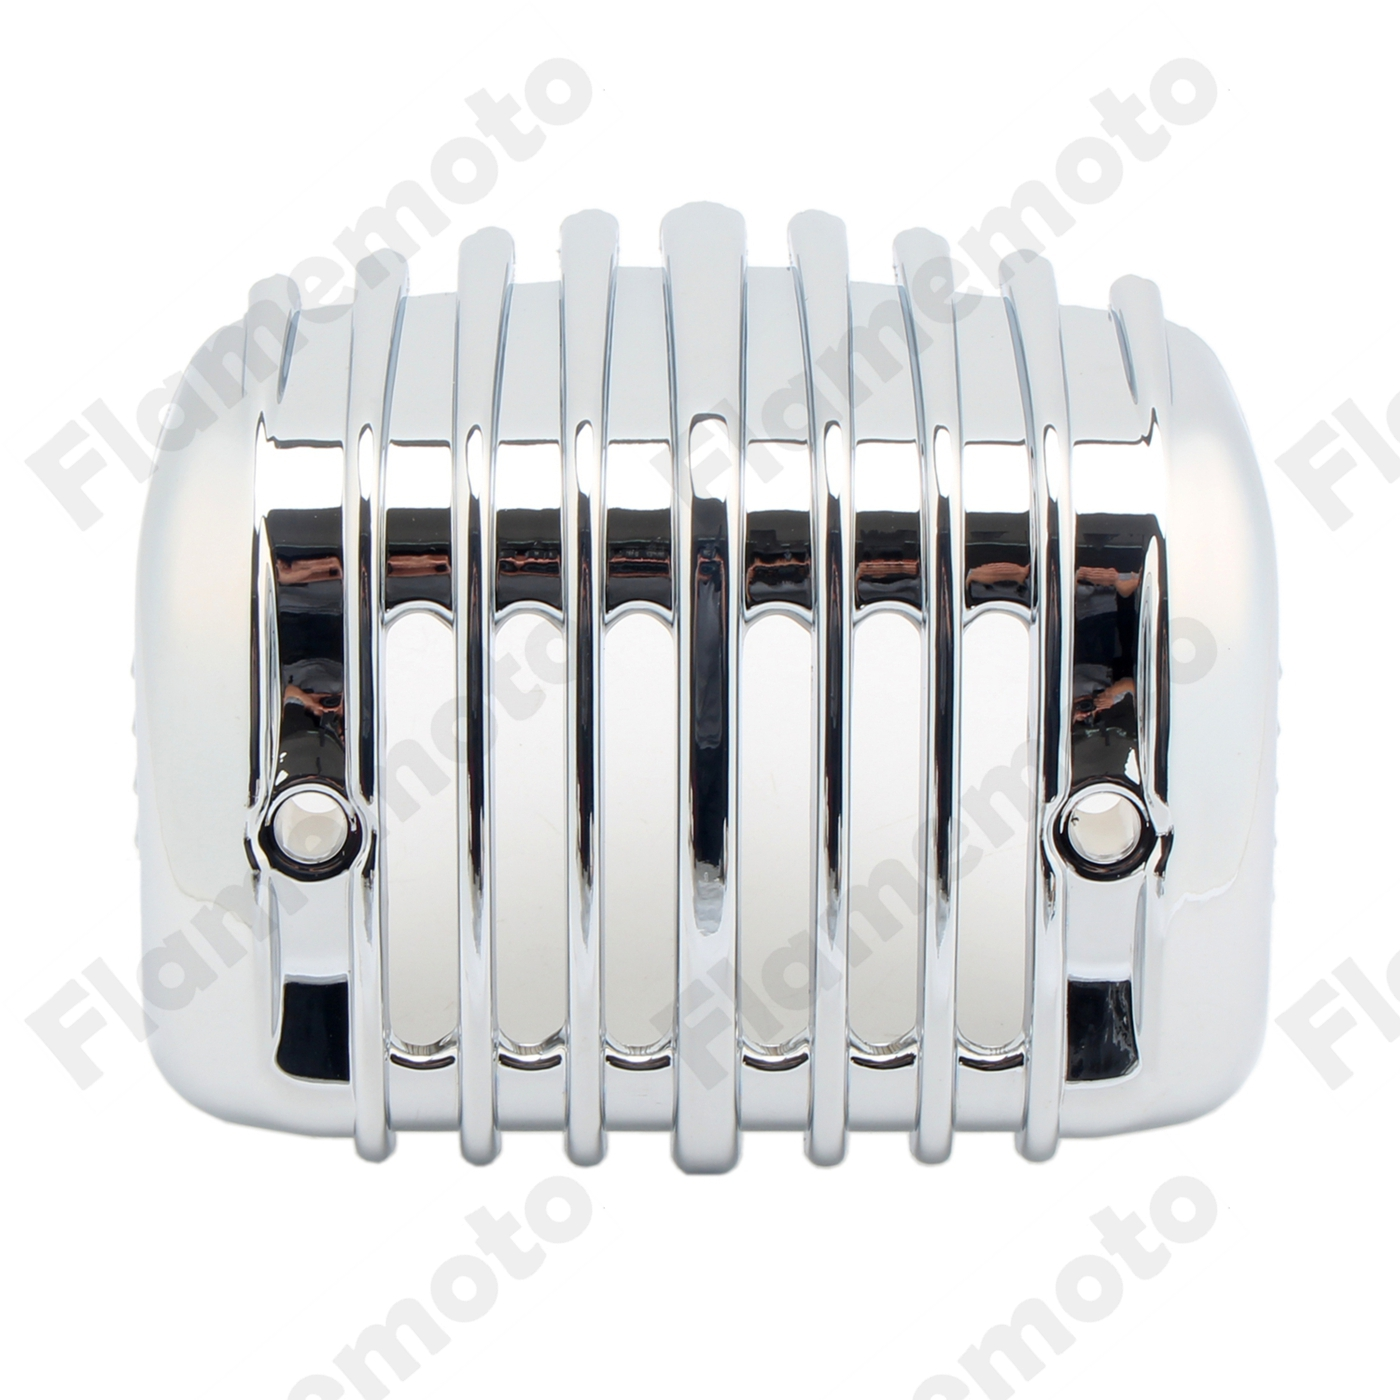 ФОТО Motorcycle Parts Chrome Voltage Regulator Cover For Harley Heritage Softail Classic FLSTC 2001 2002 2003 2004 2005 2006-2017